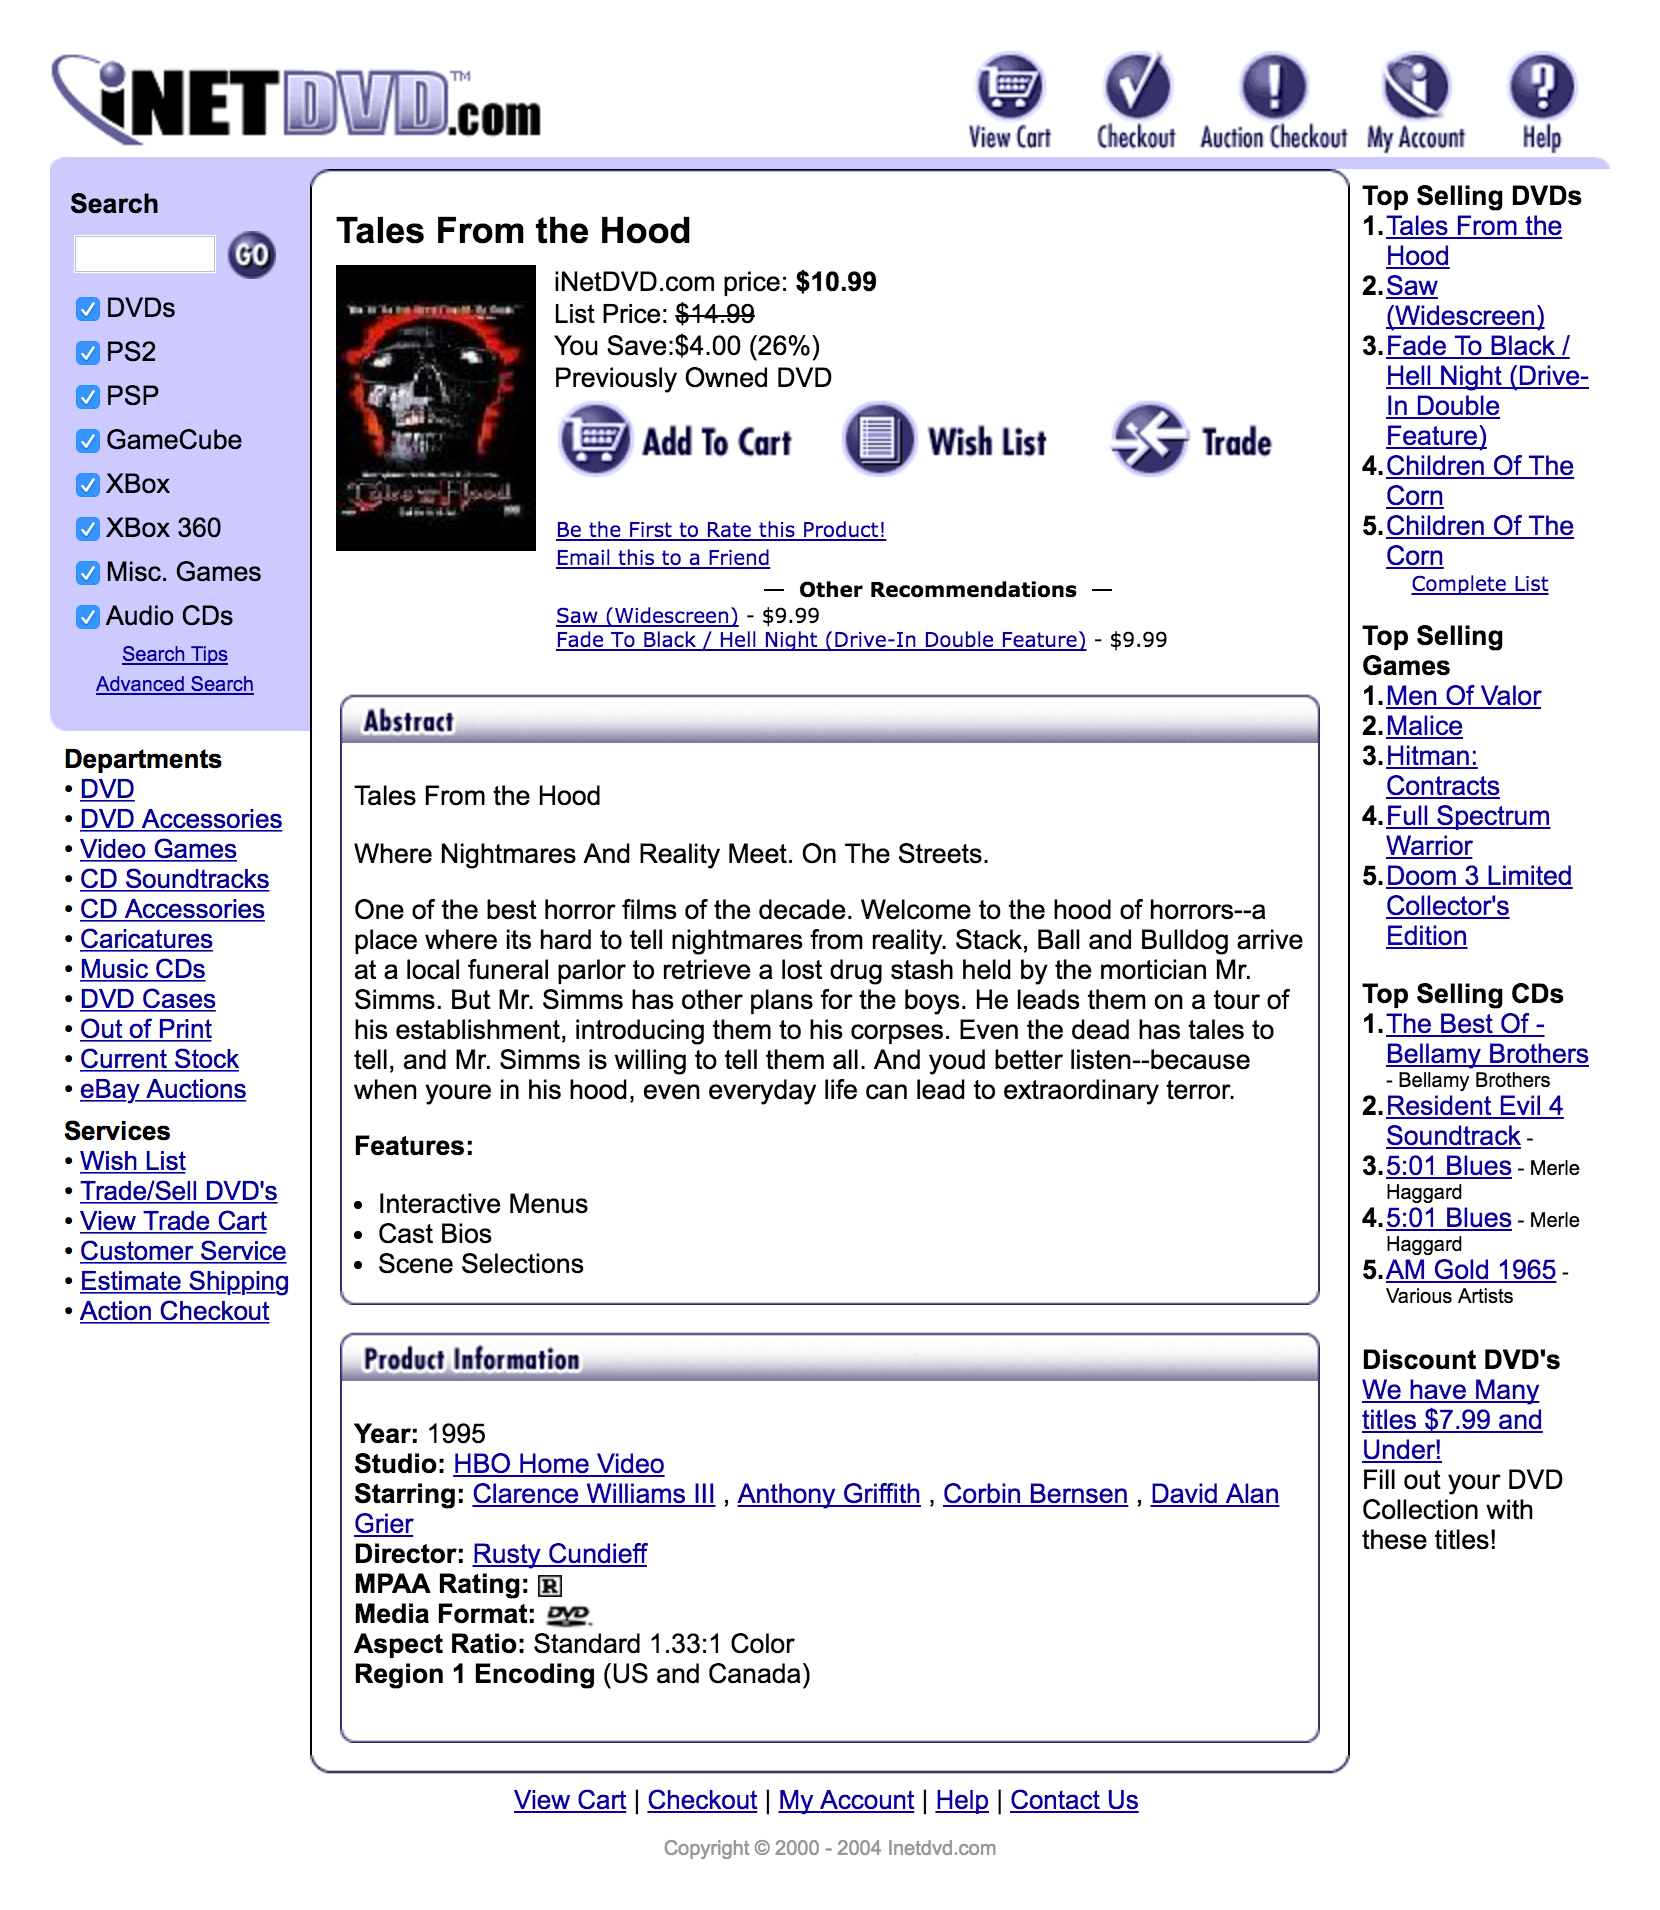 iNetDVD.com Website Product Detail Page Design 2003